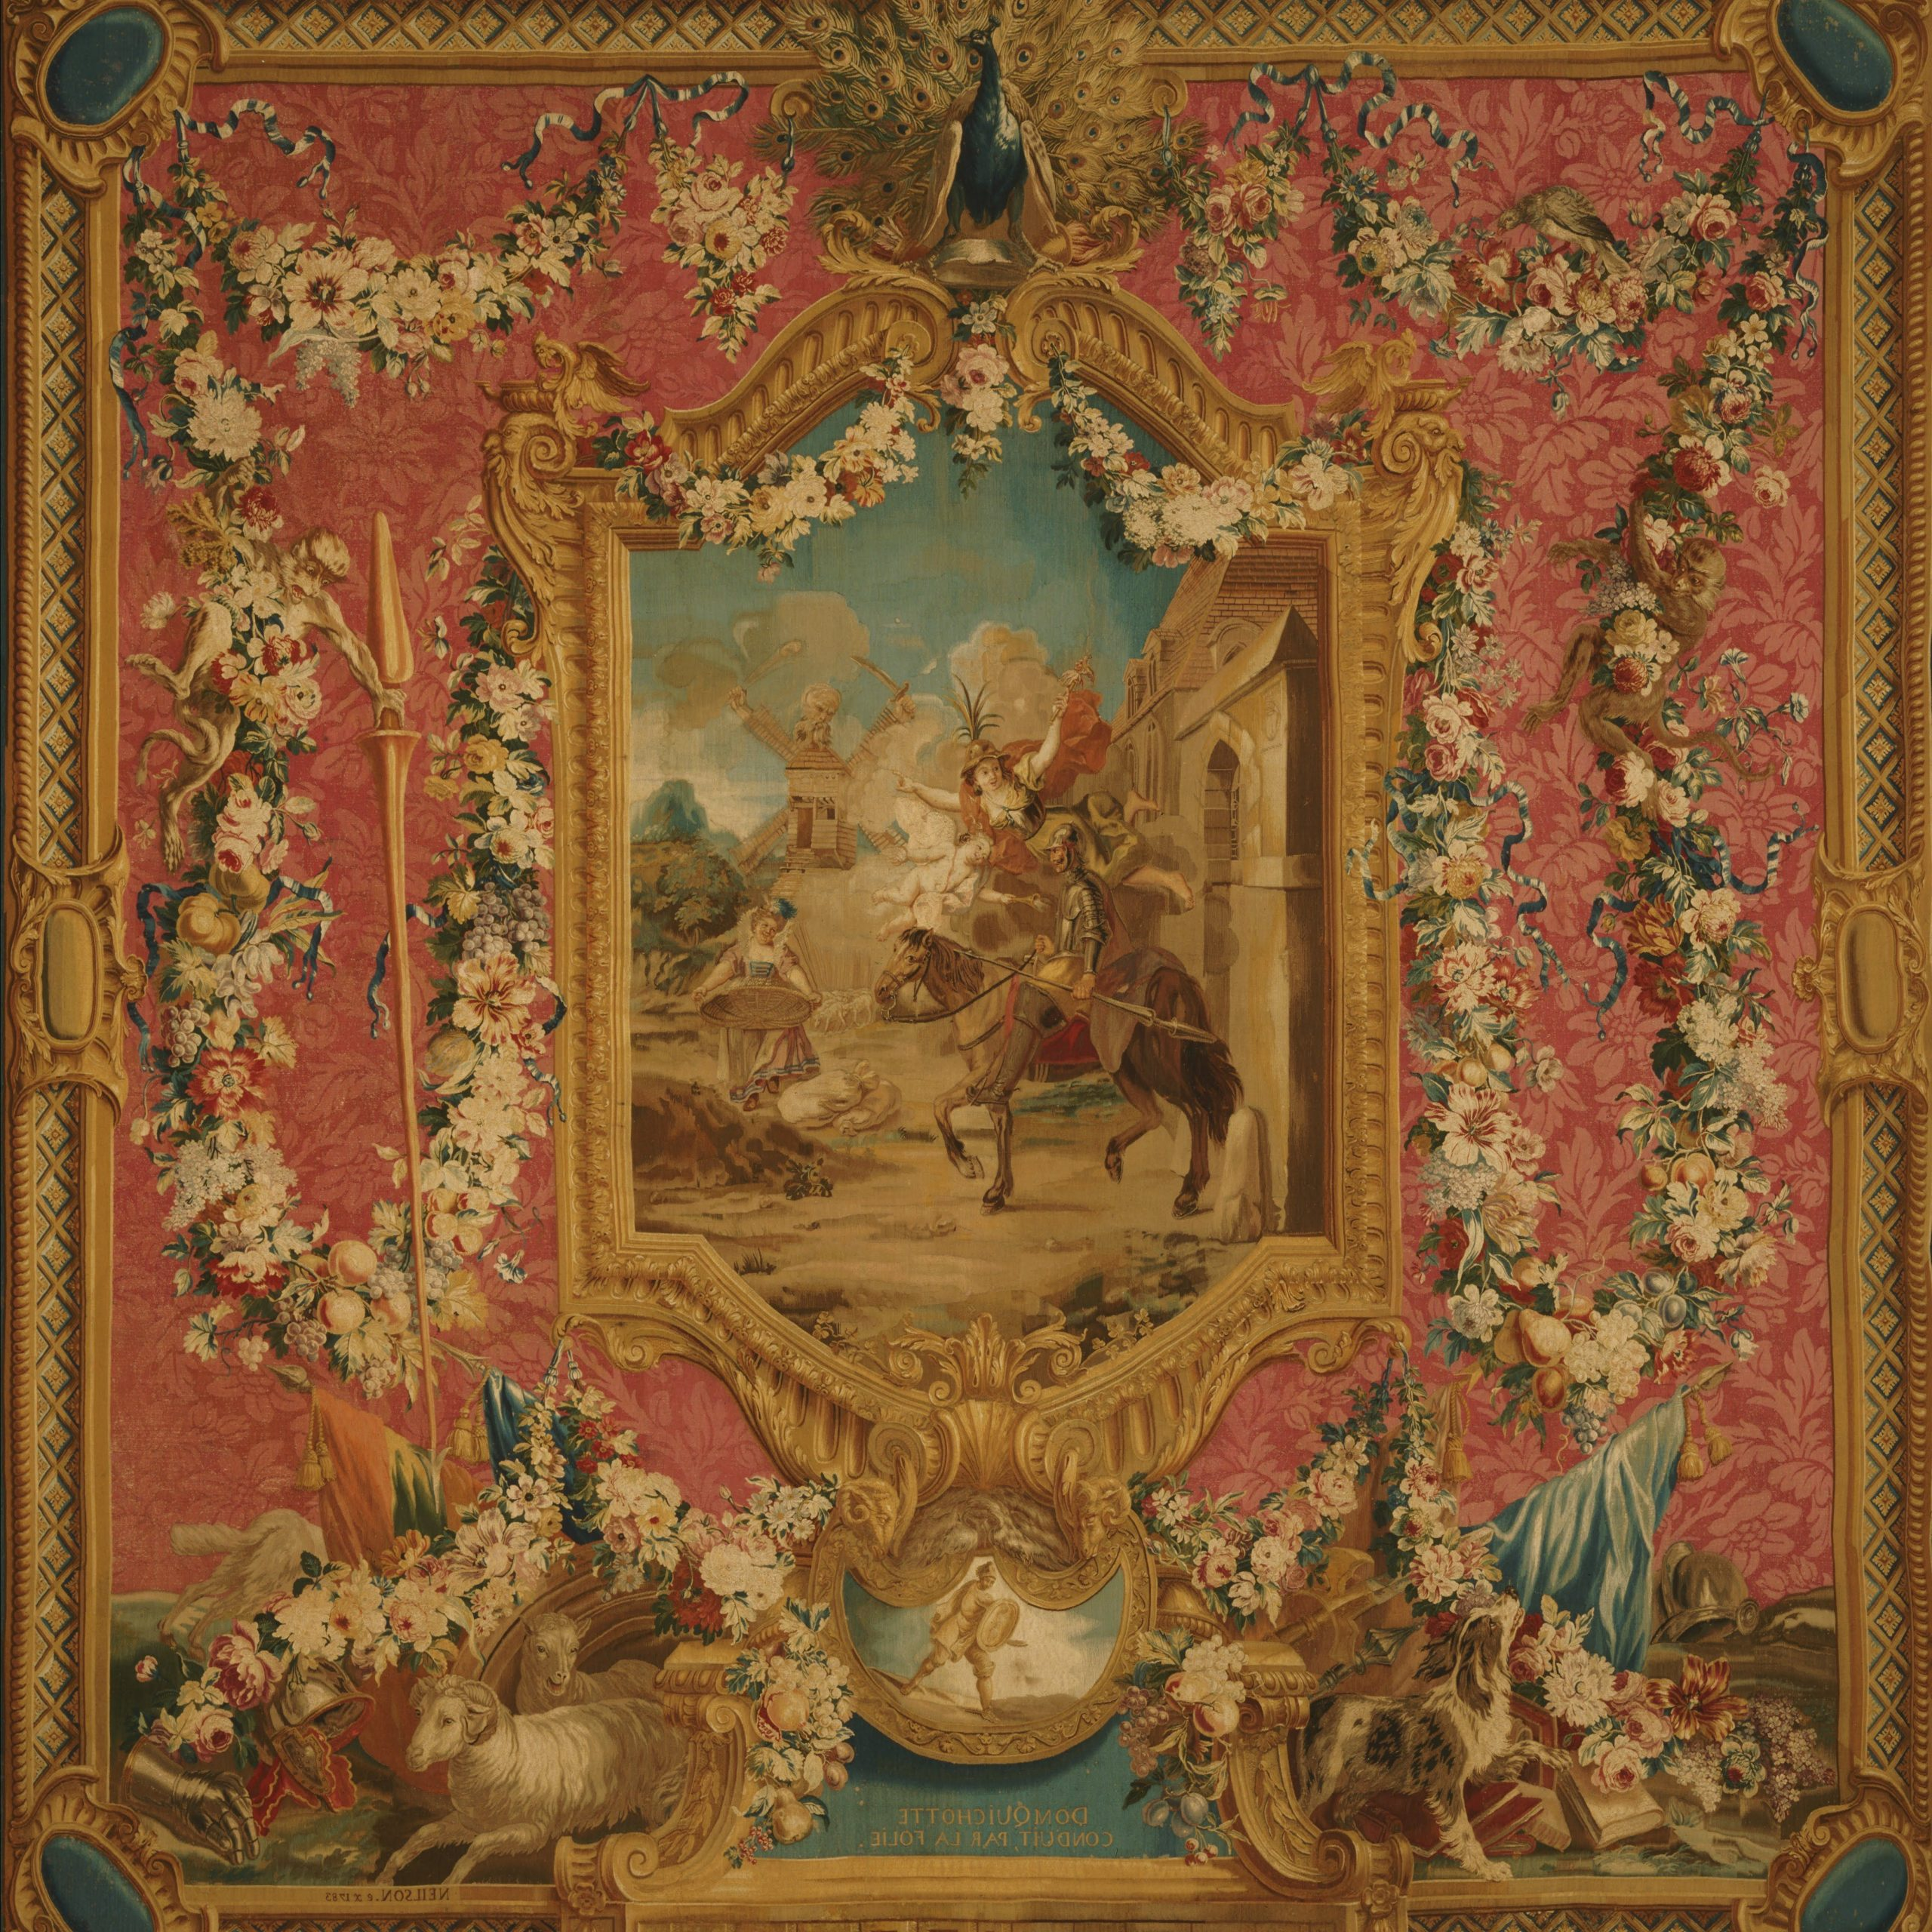 Woven At The Gobelins Tapestry Manufactory, Paris, 1699 With Regard To 2020 Grandes Armoiries I European Tapestries (View 7 of 20)